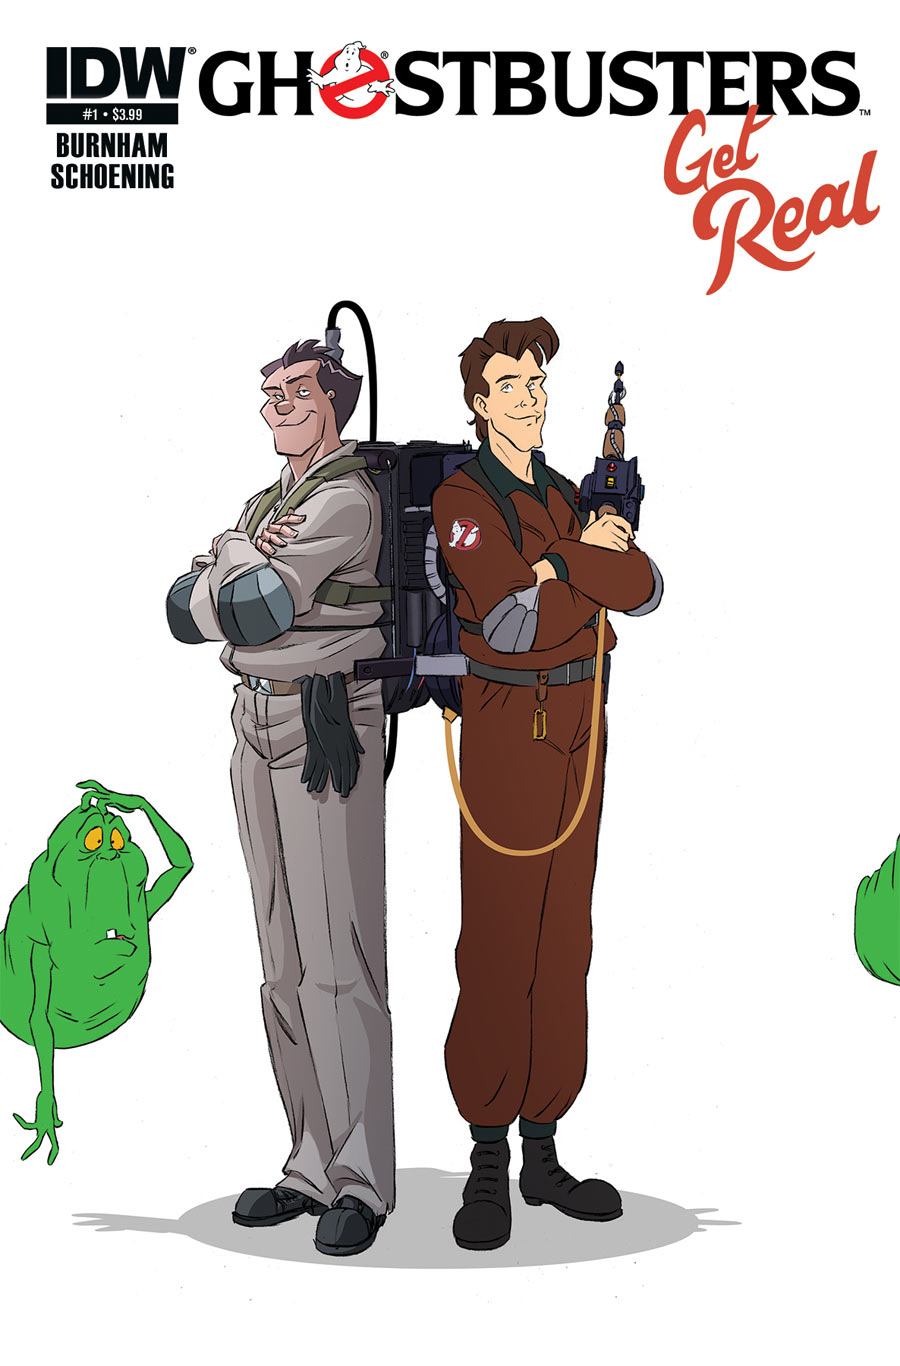 New Ghostbusters Comic Book Mini-series gets 'Real'